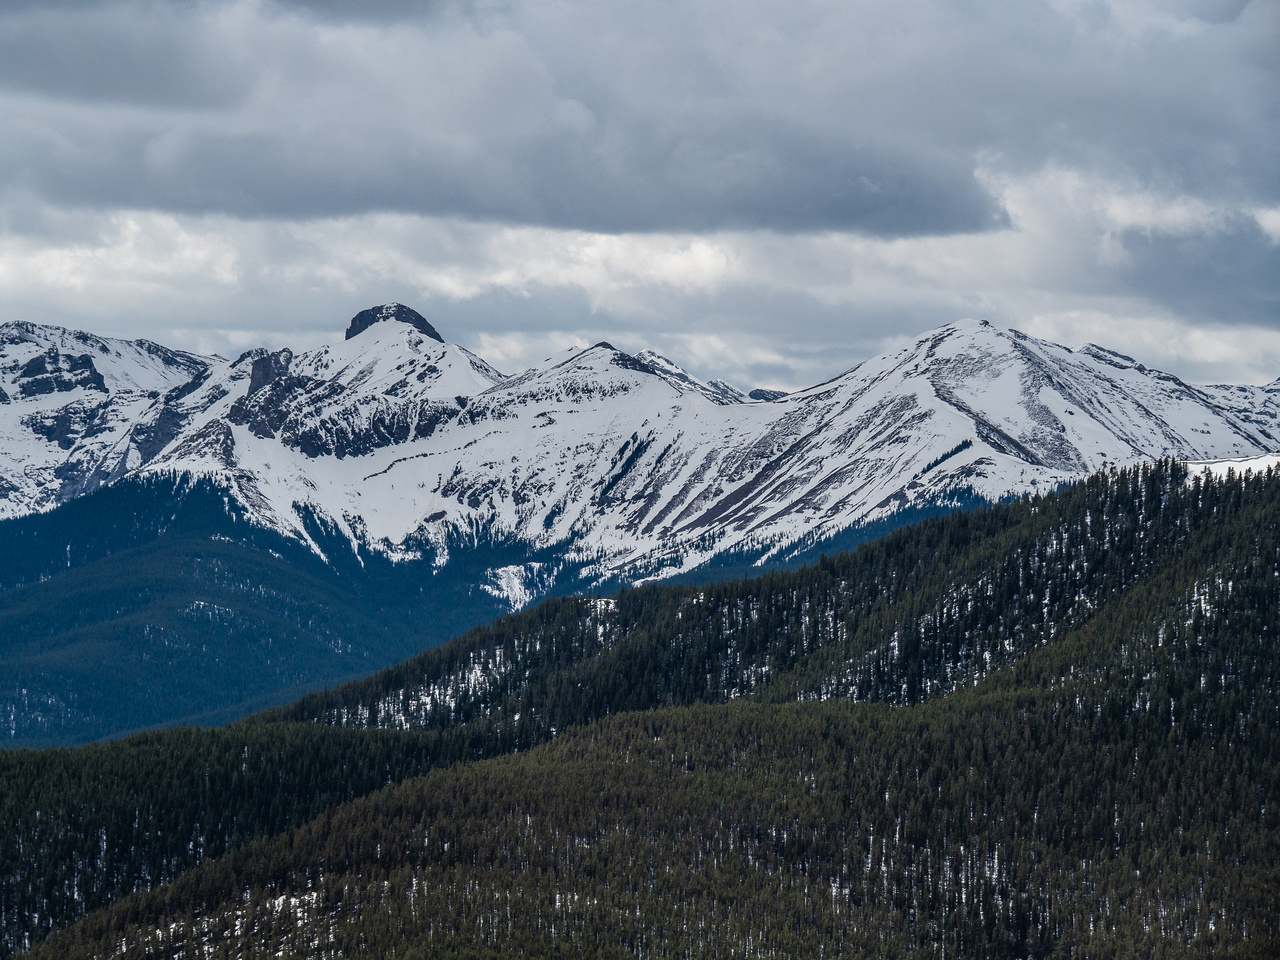 Belmore Brown, Tiara, Boundary Ridge and Boundary Peak from L to R.